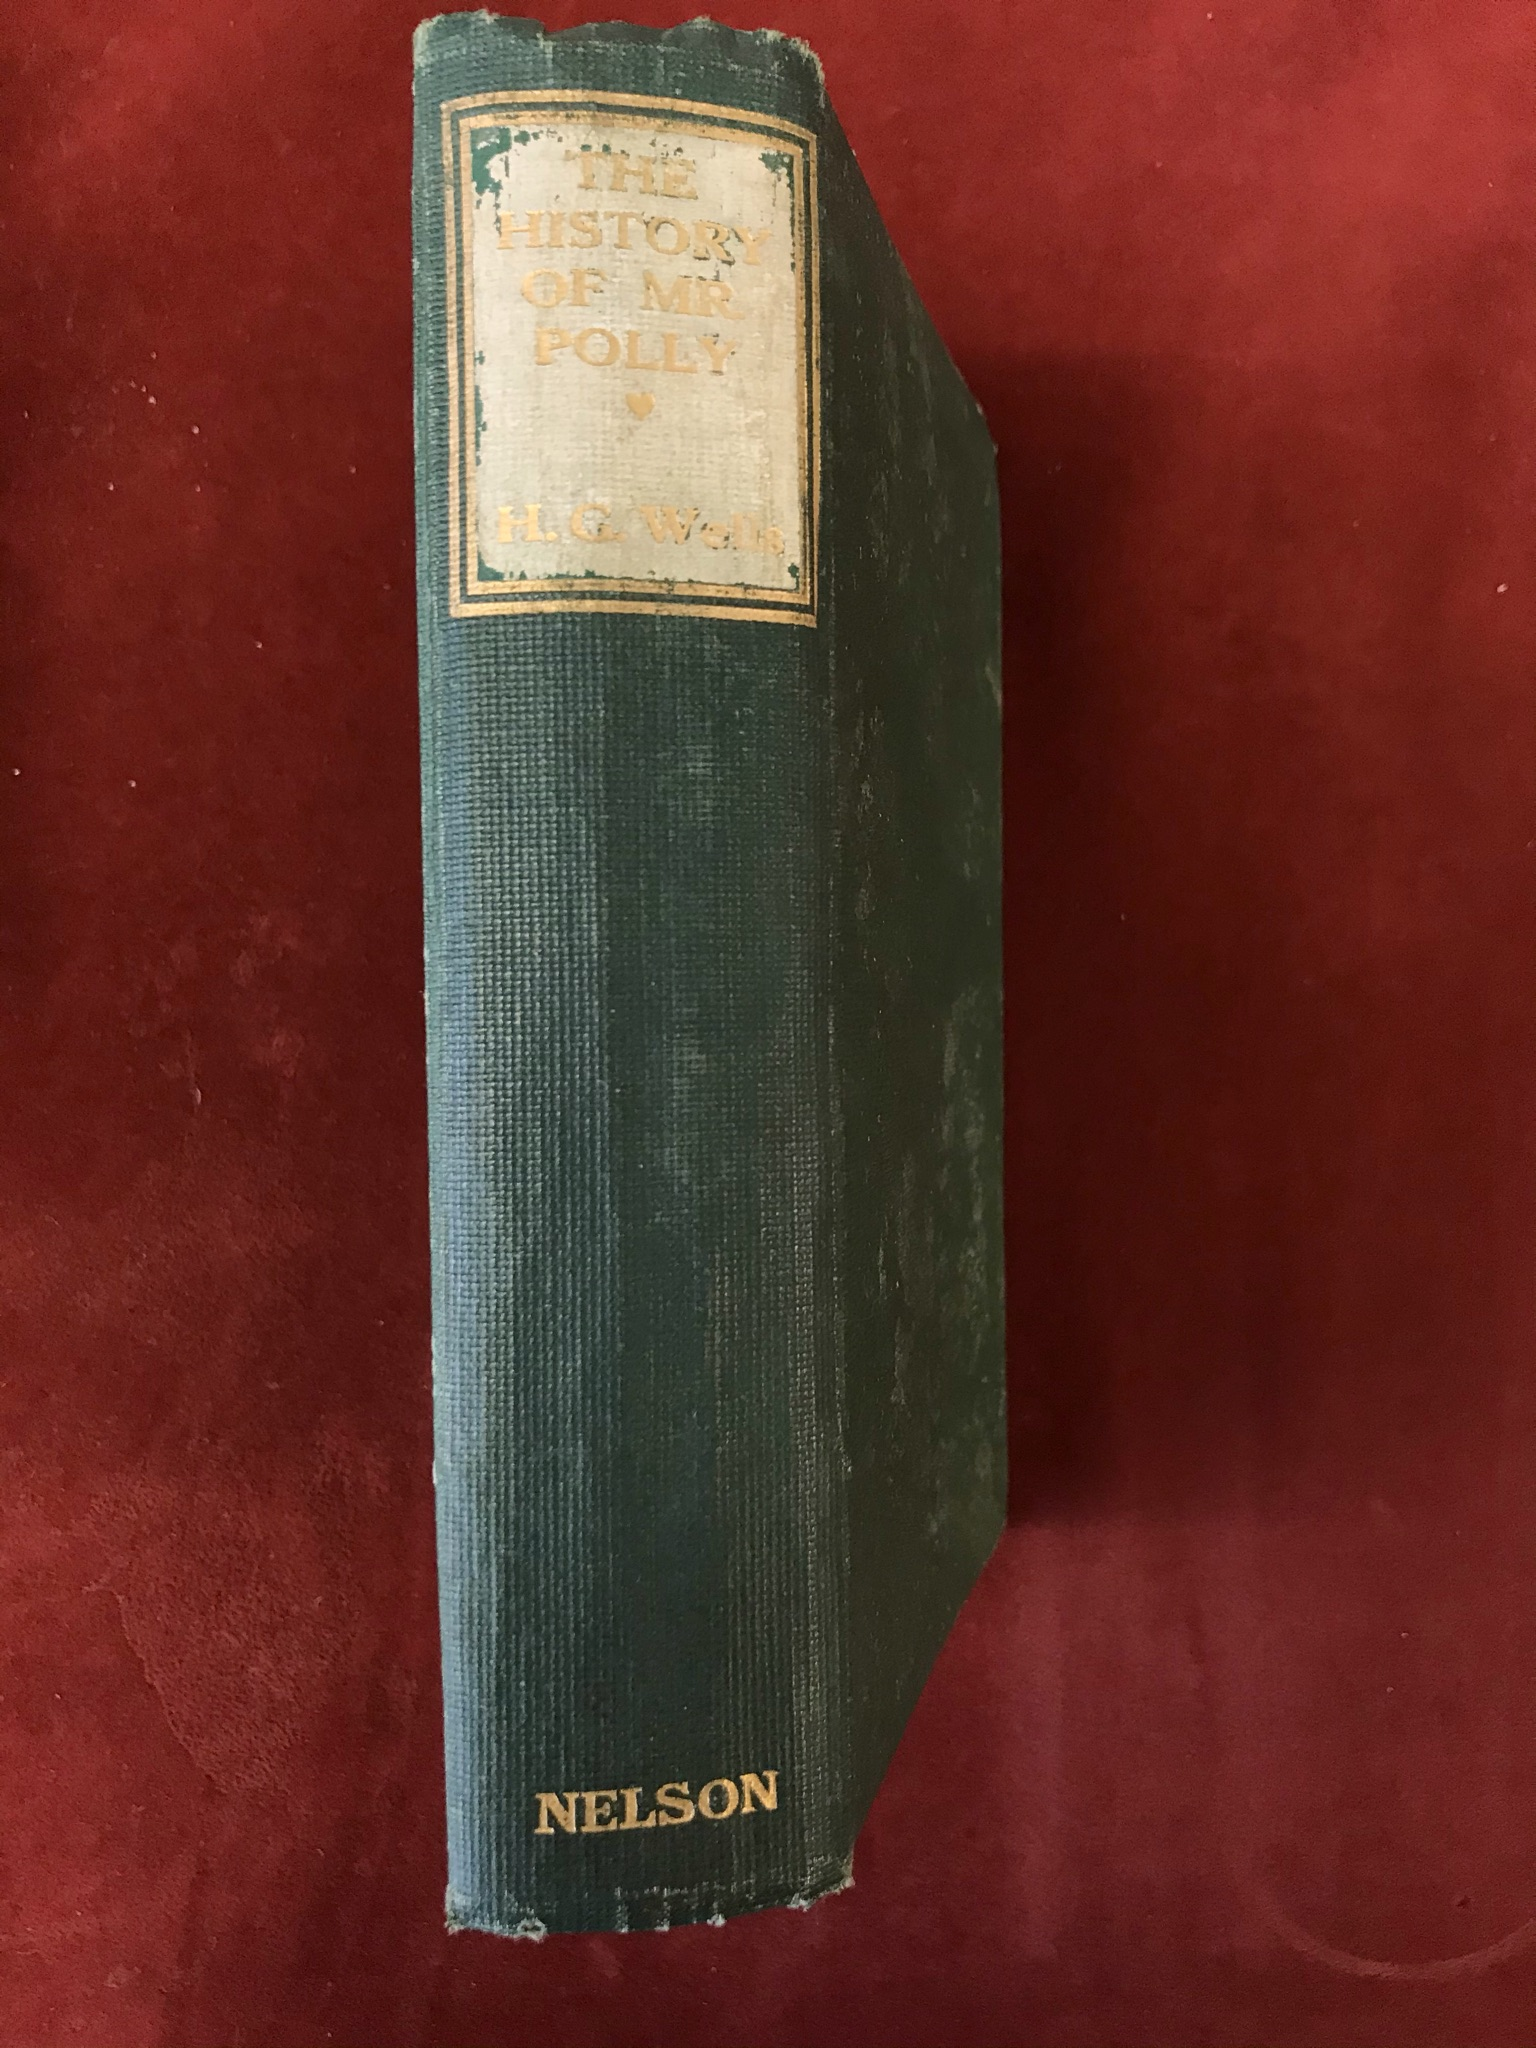 The History of Mr. PollyFirst edition, no D/W, flaked spine, 1910 - Image 2 of 3